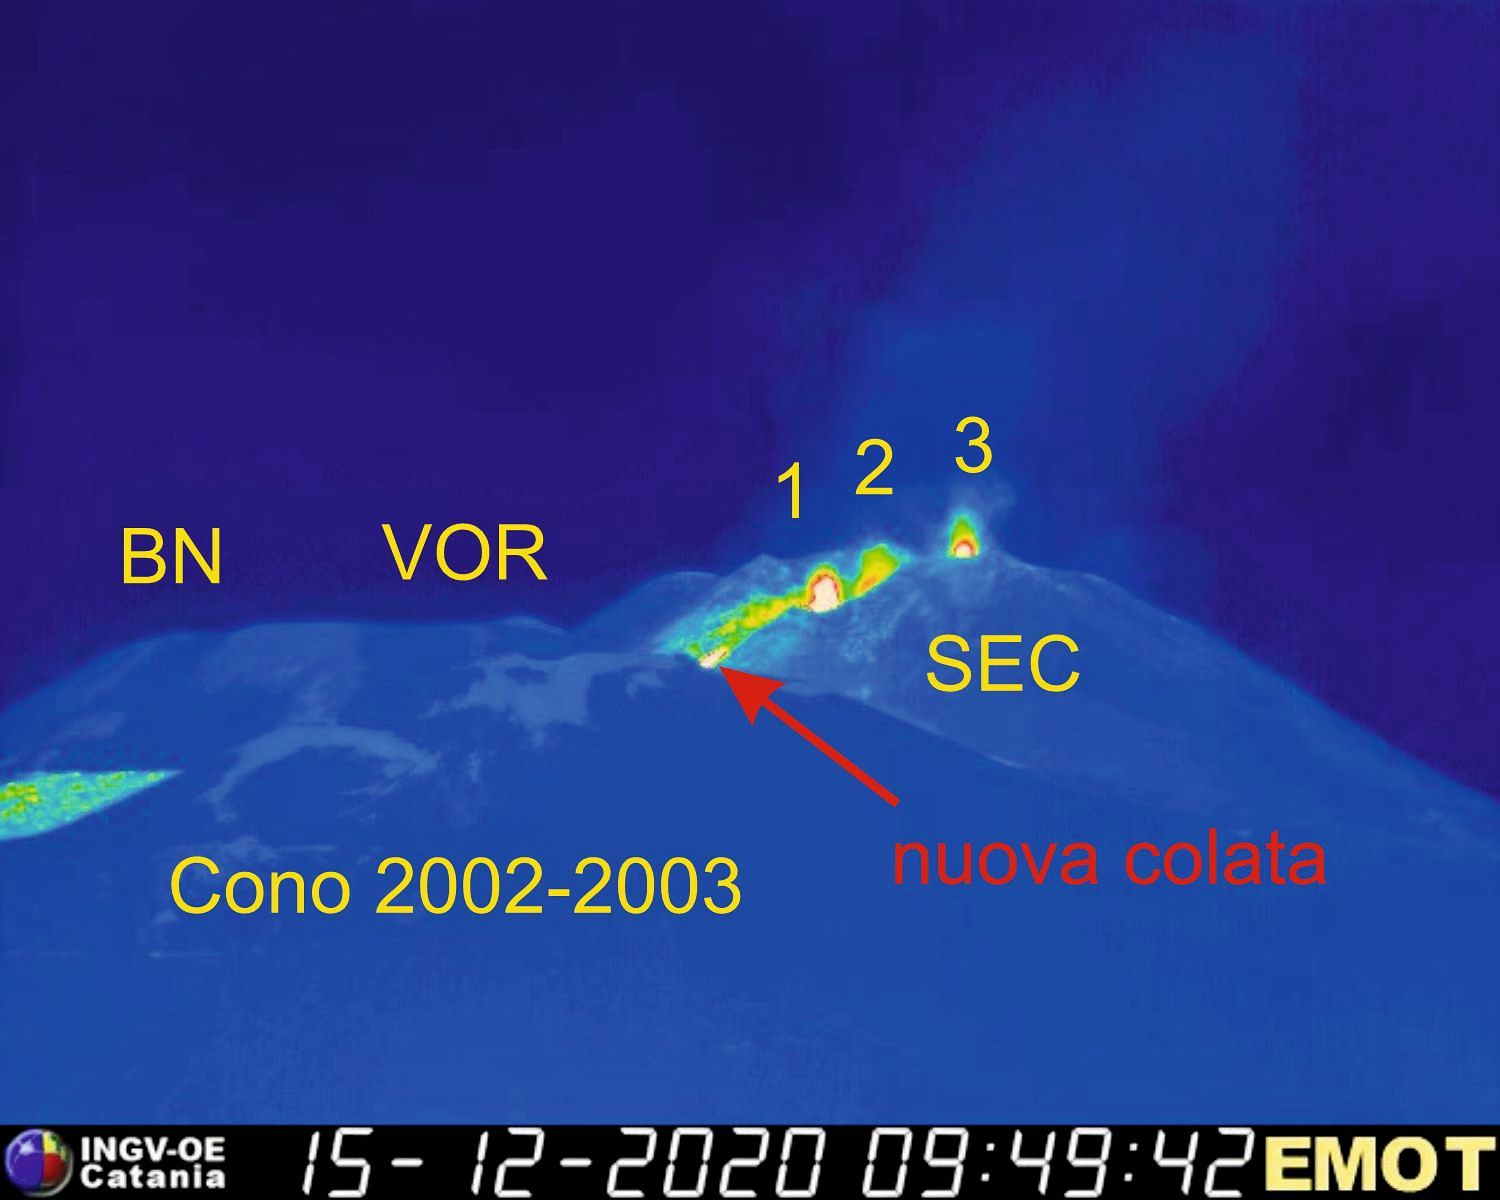 Etna - 3 active mouths in the morning on 12/15/2020 at the south-eastern crater, and lava flow - Doc. INGV